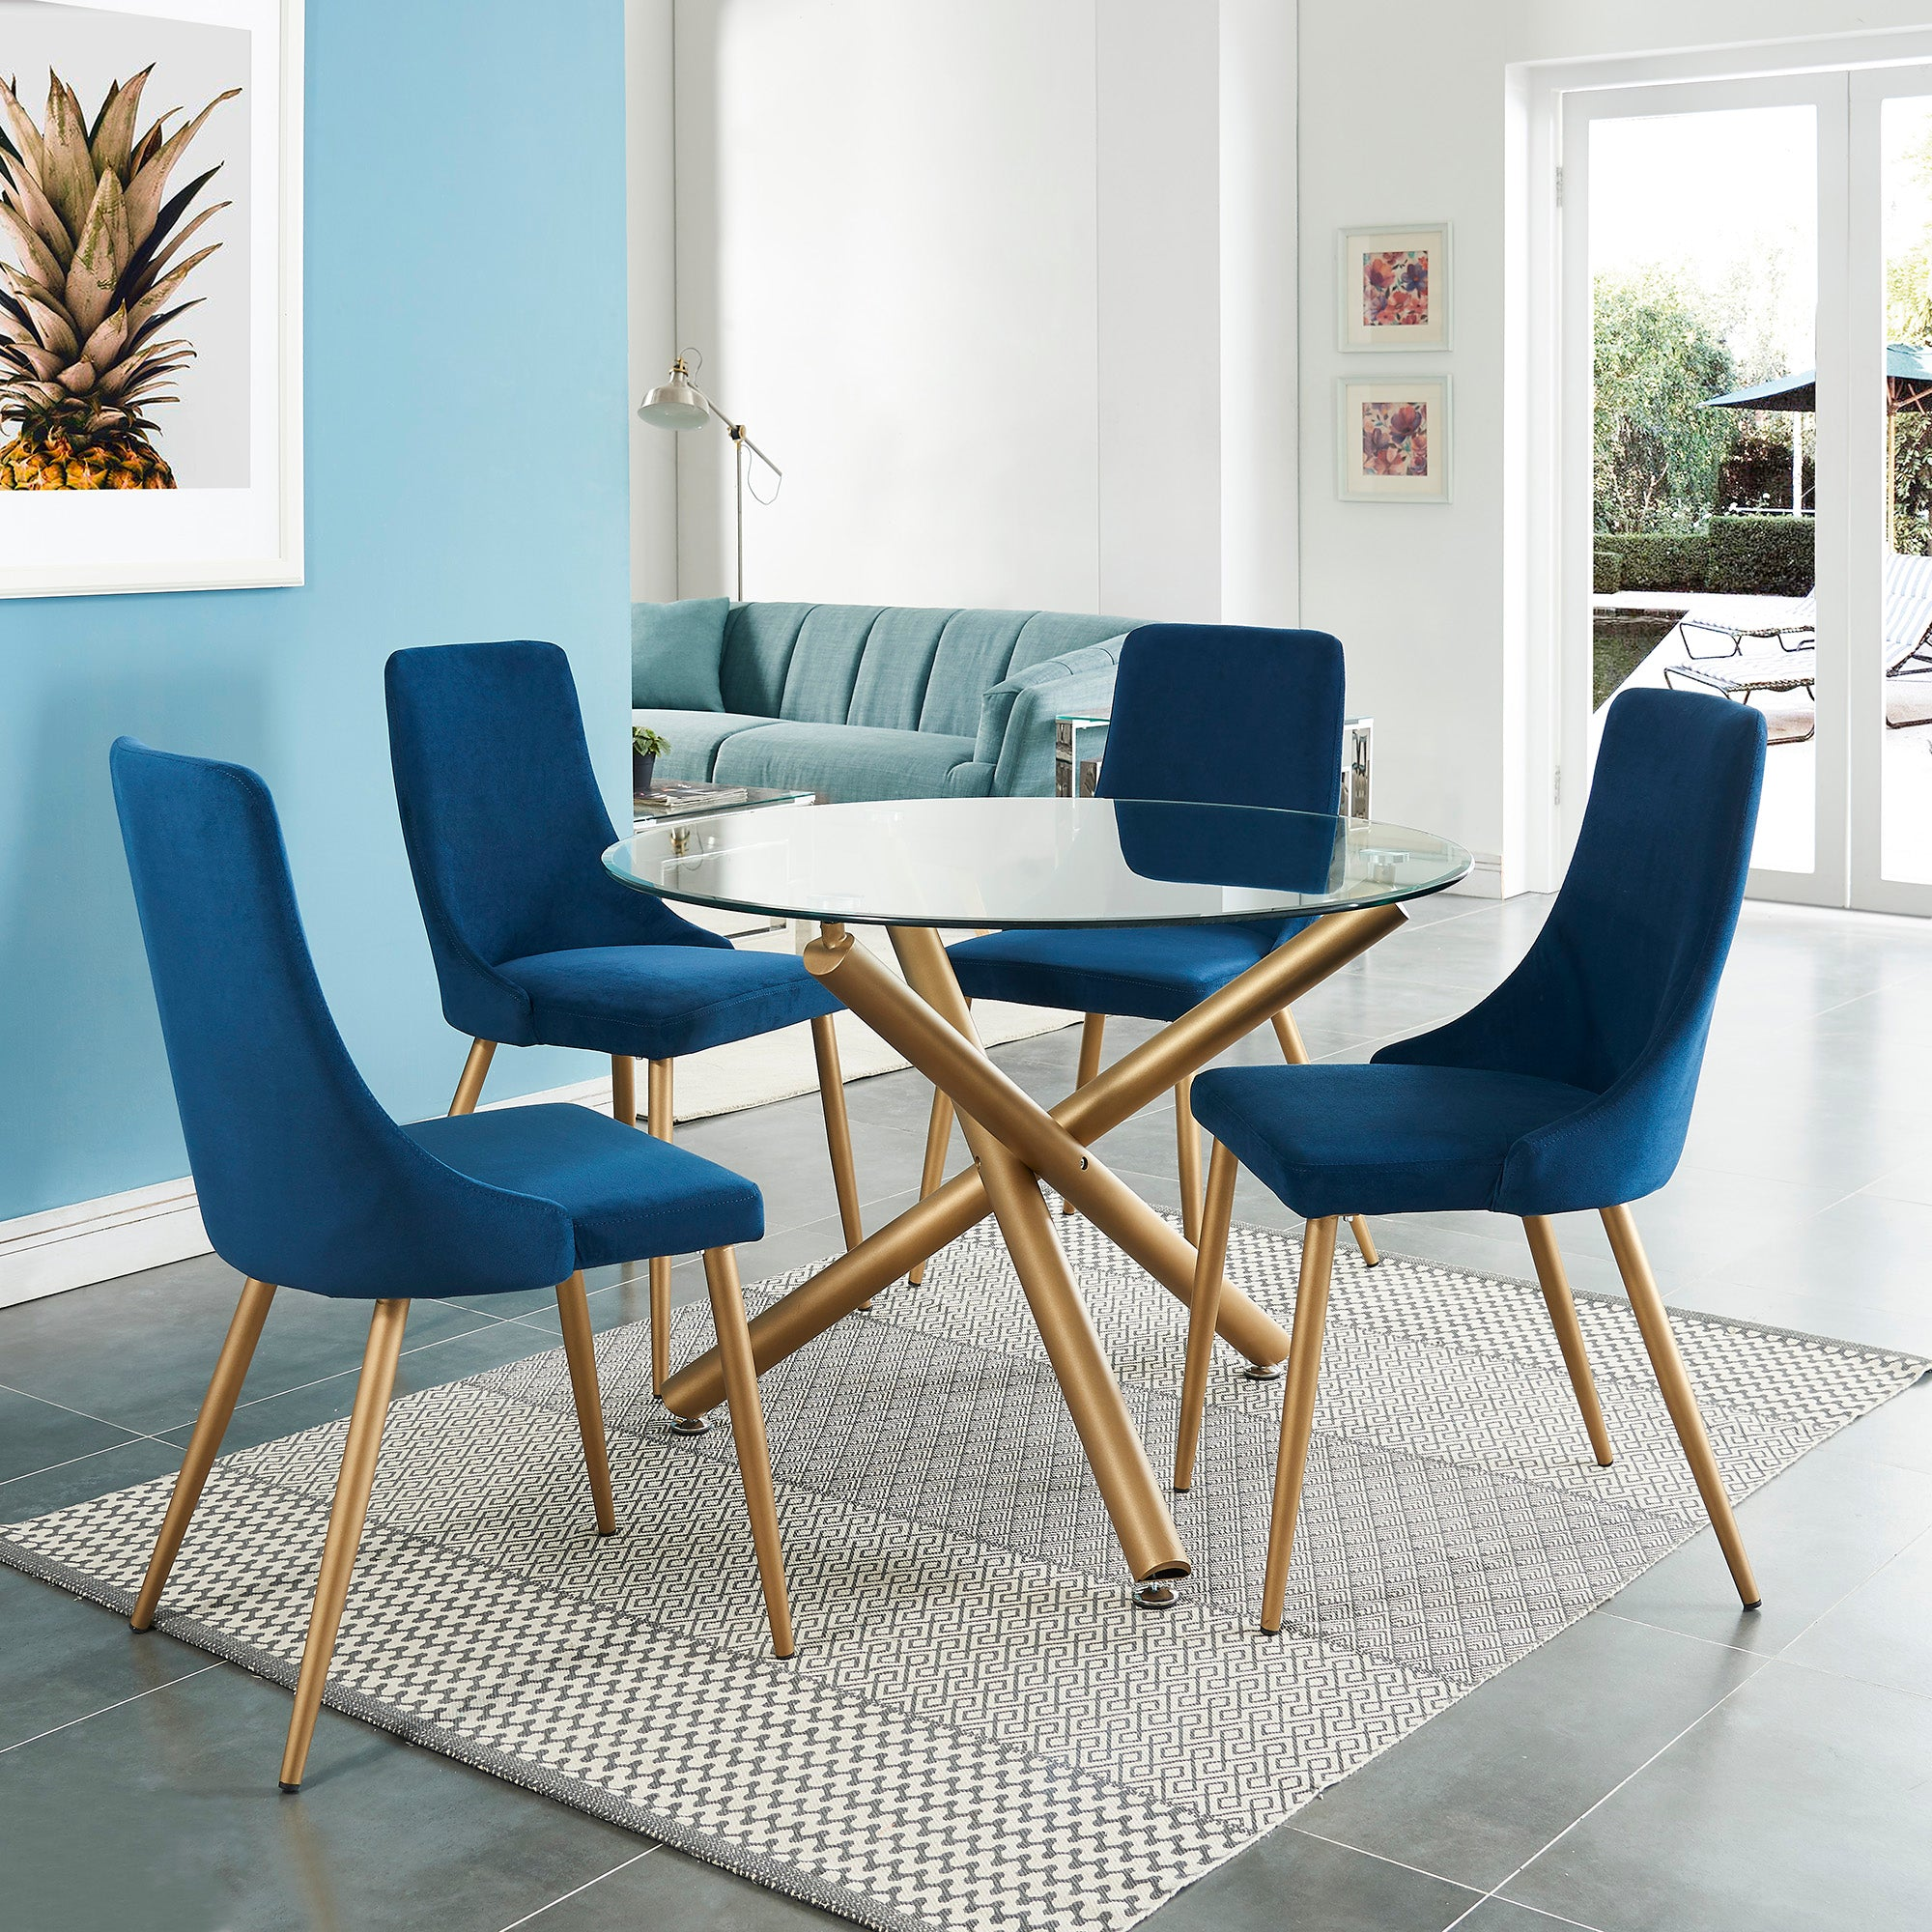 Carmilla Side Chair, set of 2 in Blue